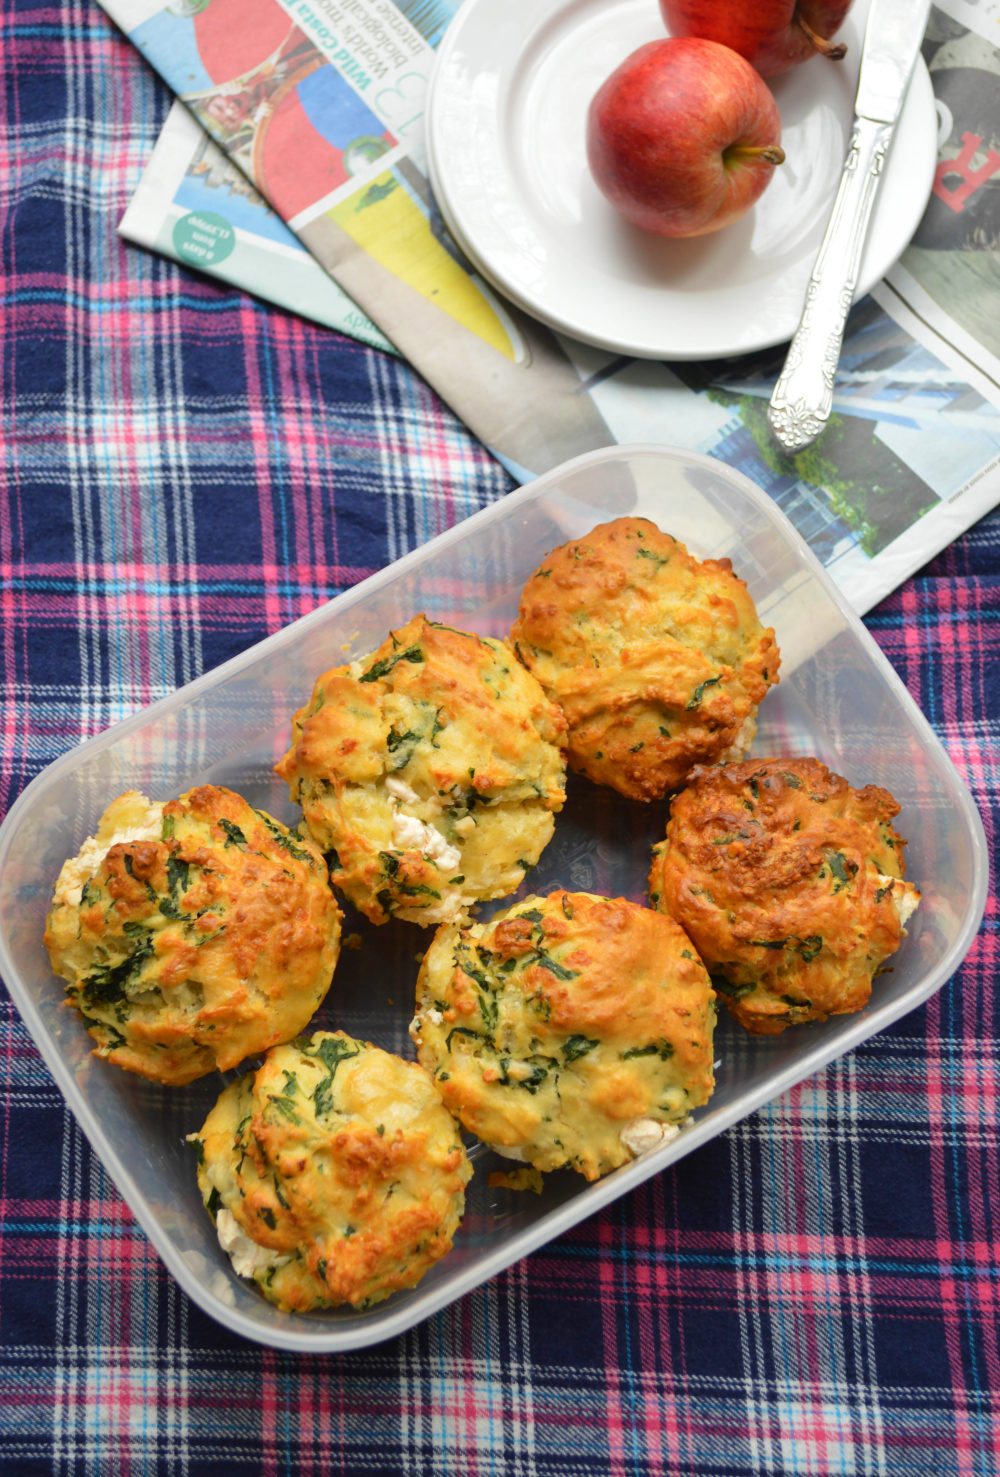 Savoury Muffins with a Cream Cheese Centre